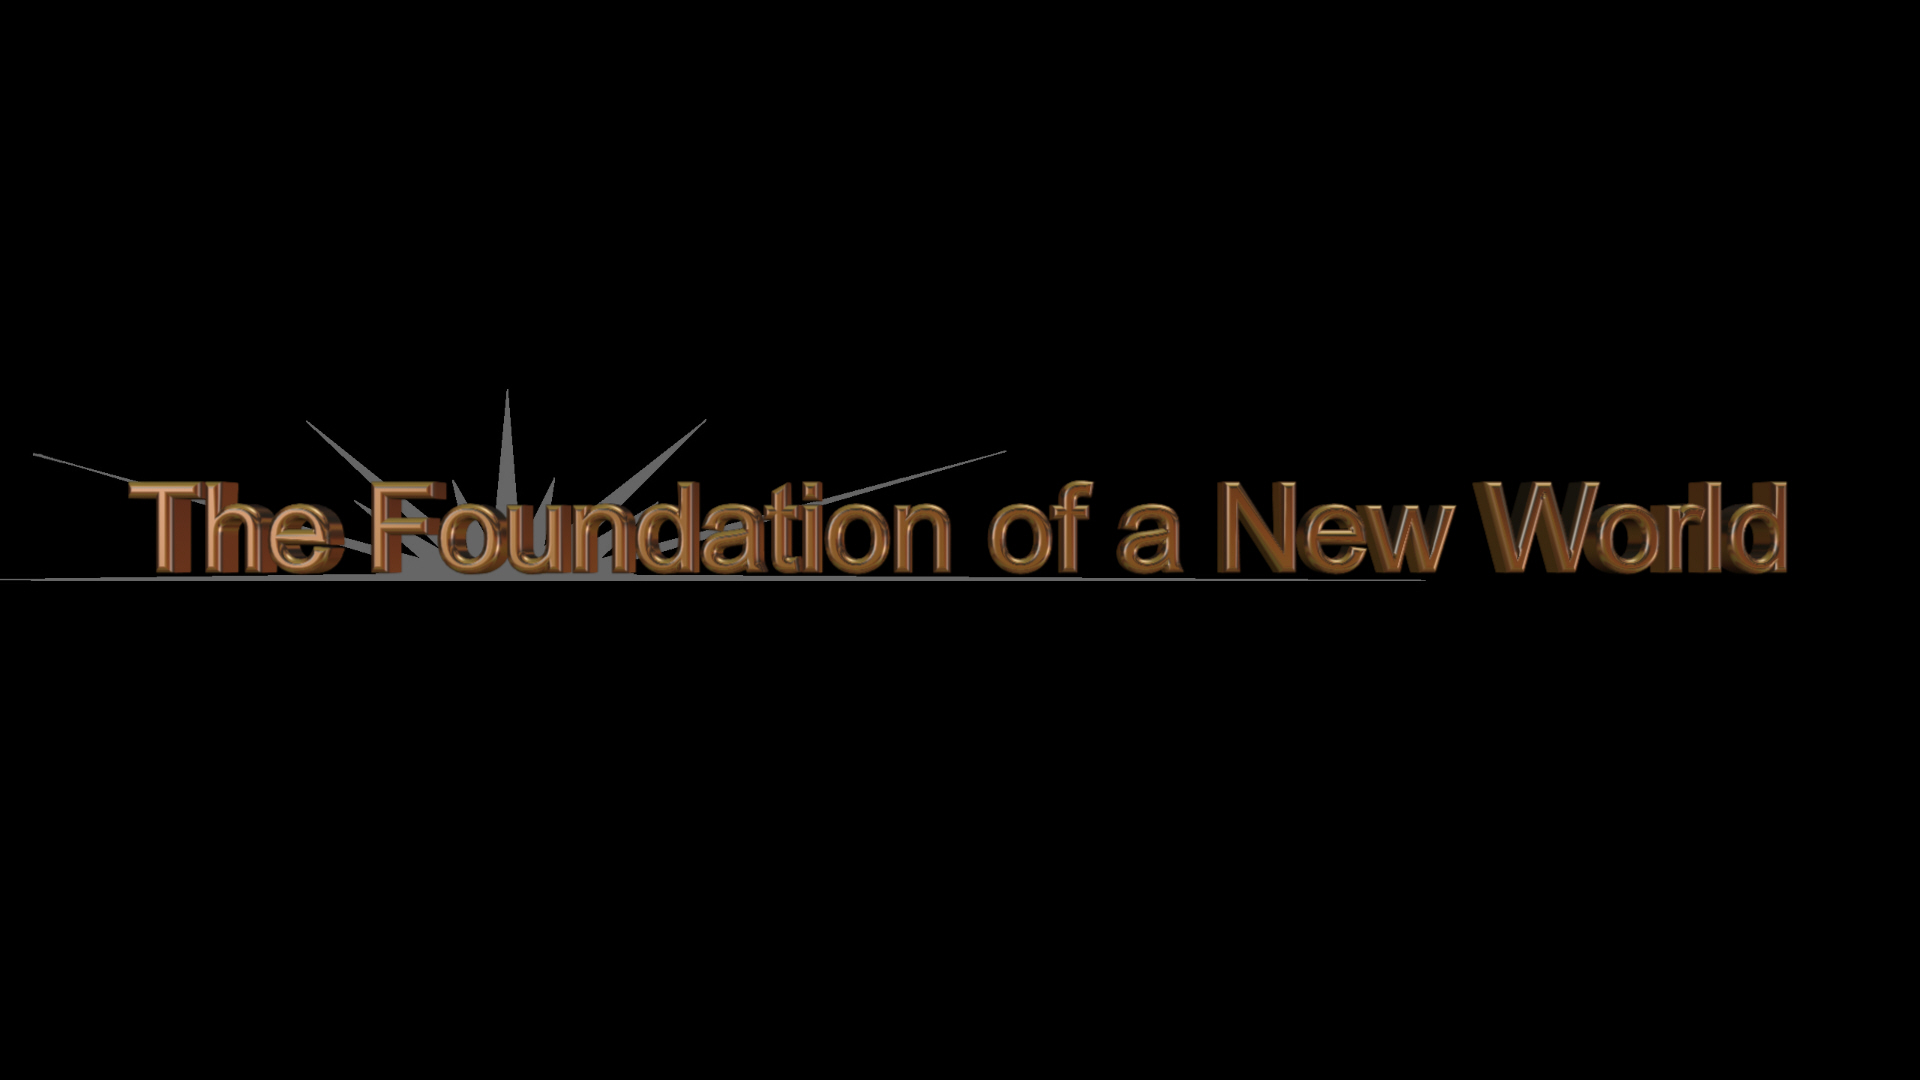 The Foundation of a New World, A New Non-Profit, Announces Launch to Overcome Societal Challenges of Poverty, Climate Change, and Exploitation